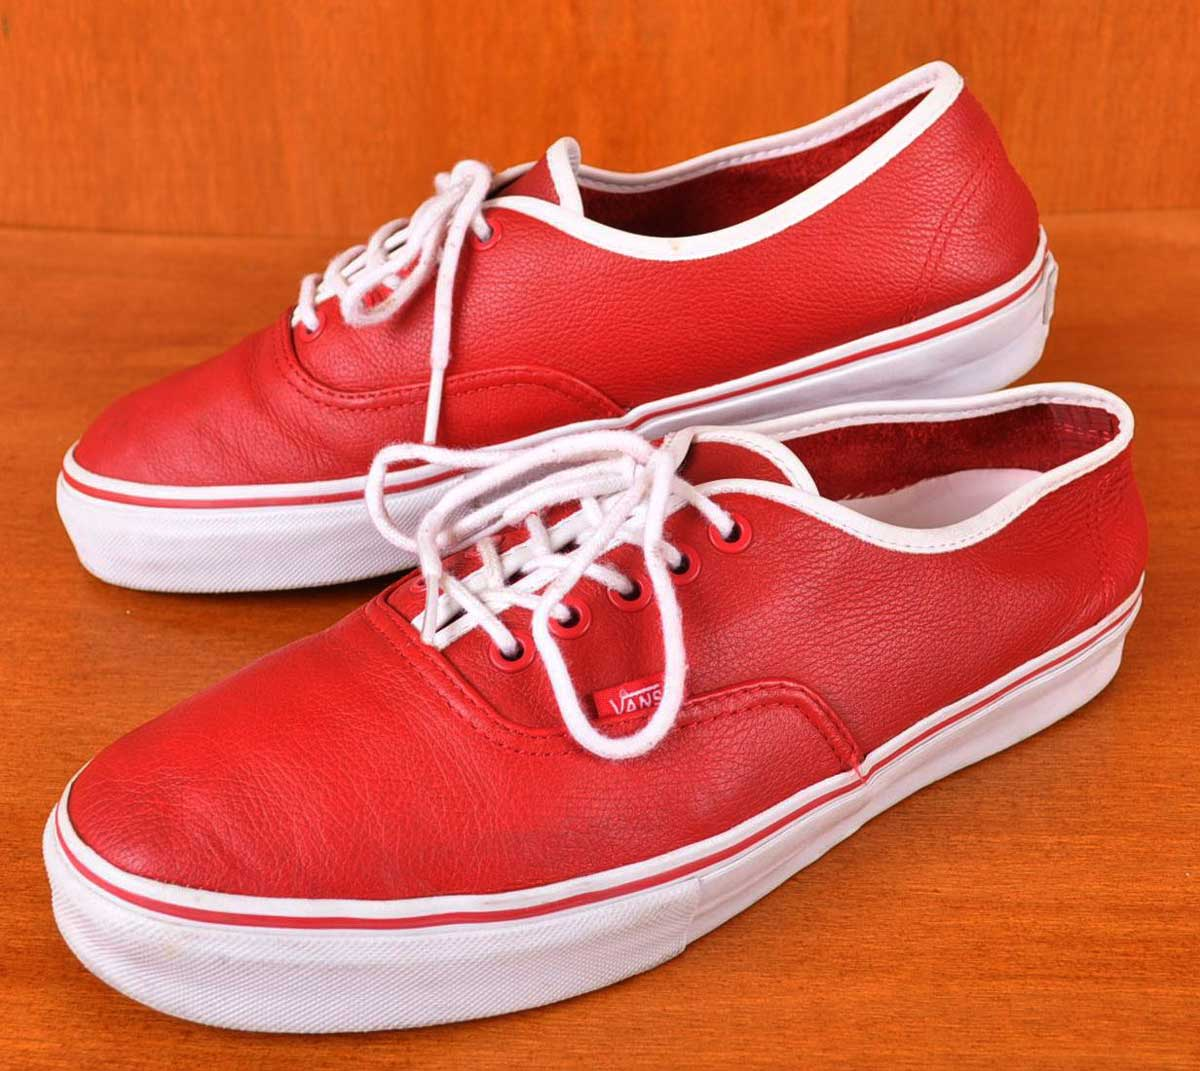 c74a86c9d3 VANS vans and VAULT bolted and Authentic authentic and ancon leather deck  shoes and red leather   JPN28.0cm